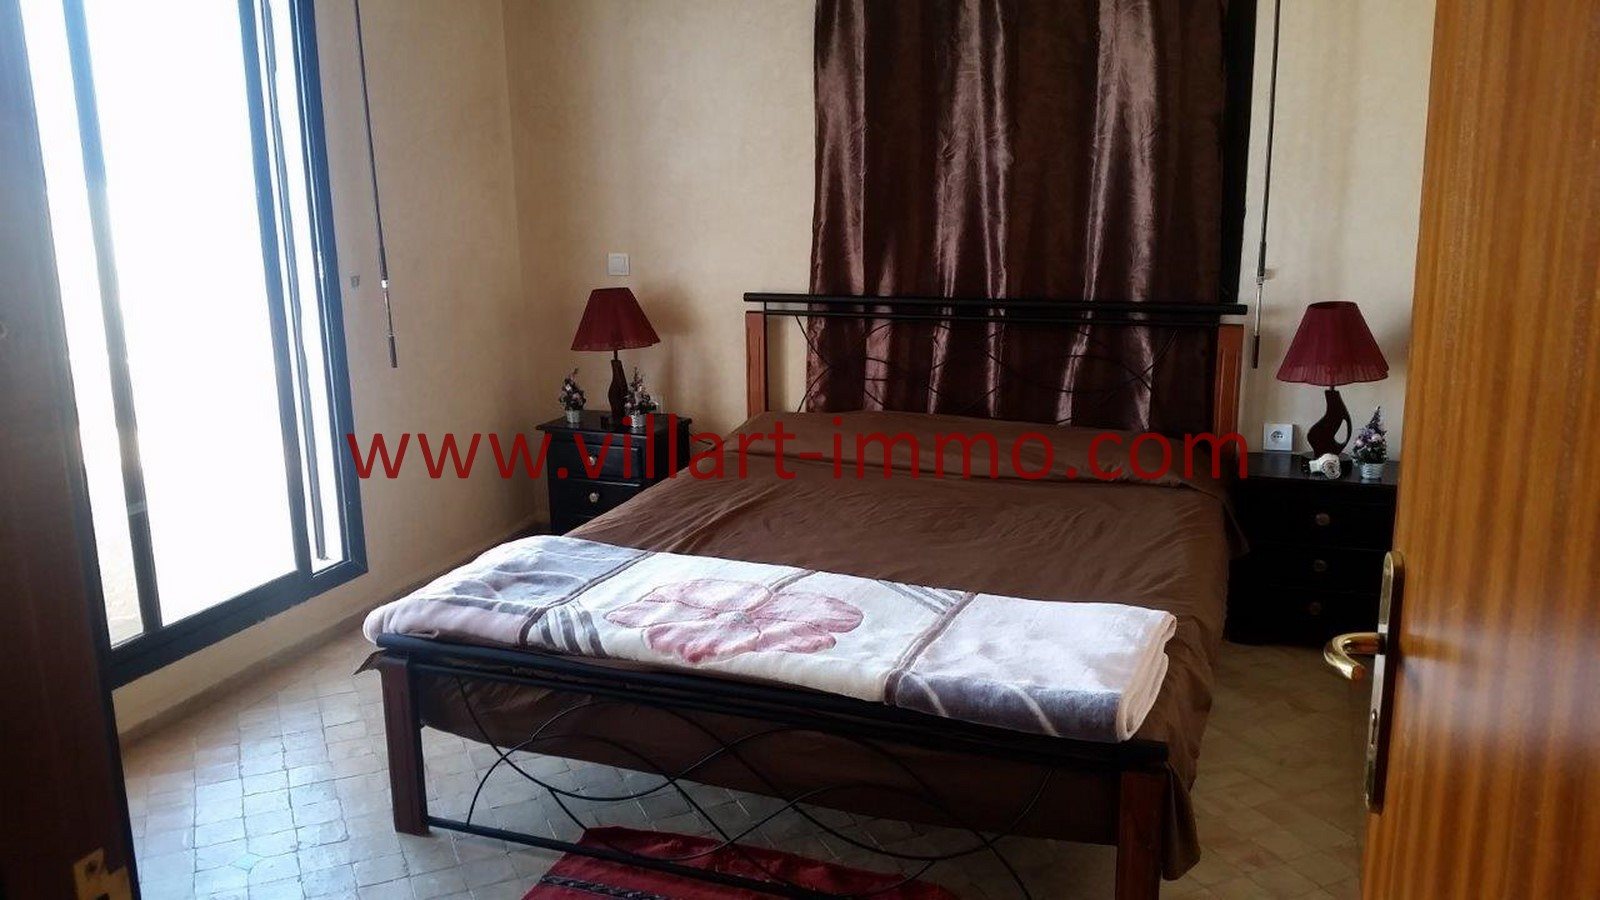 location chambre tanger